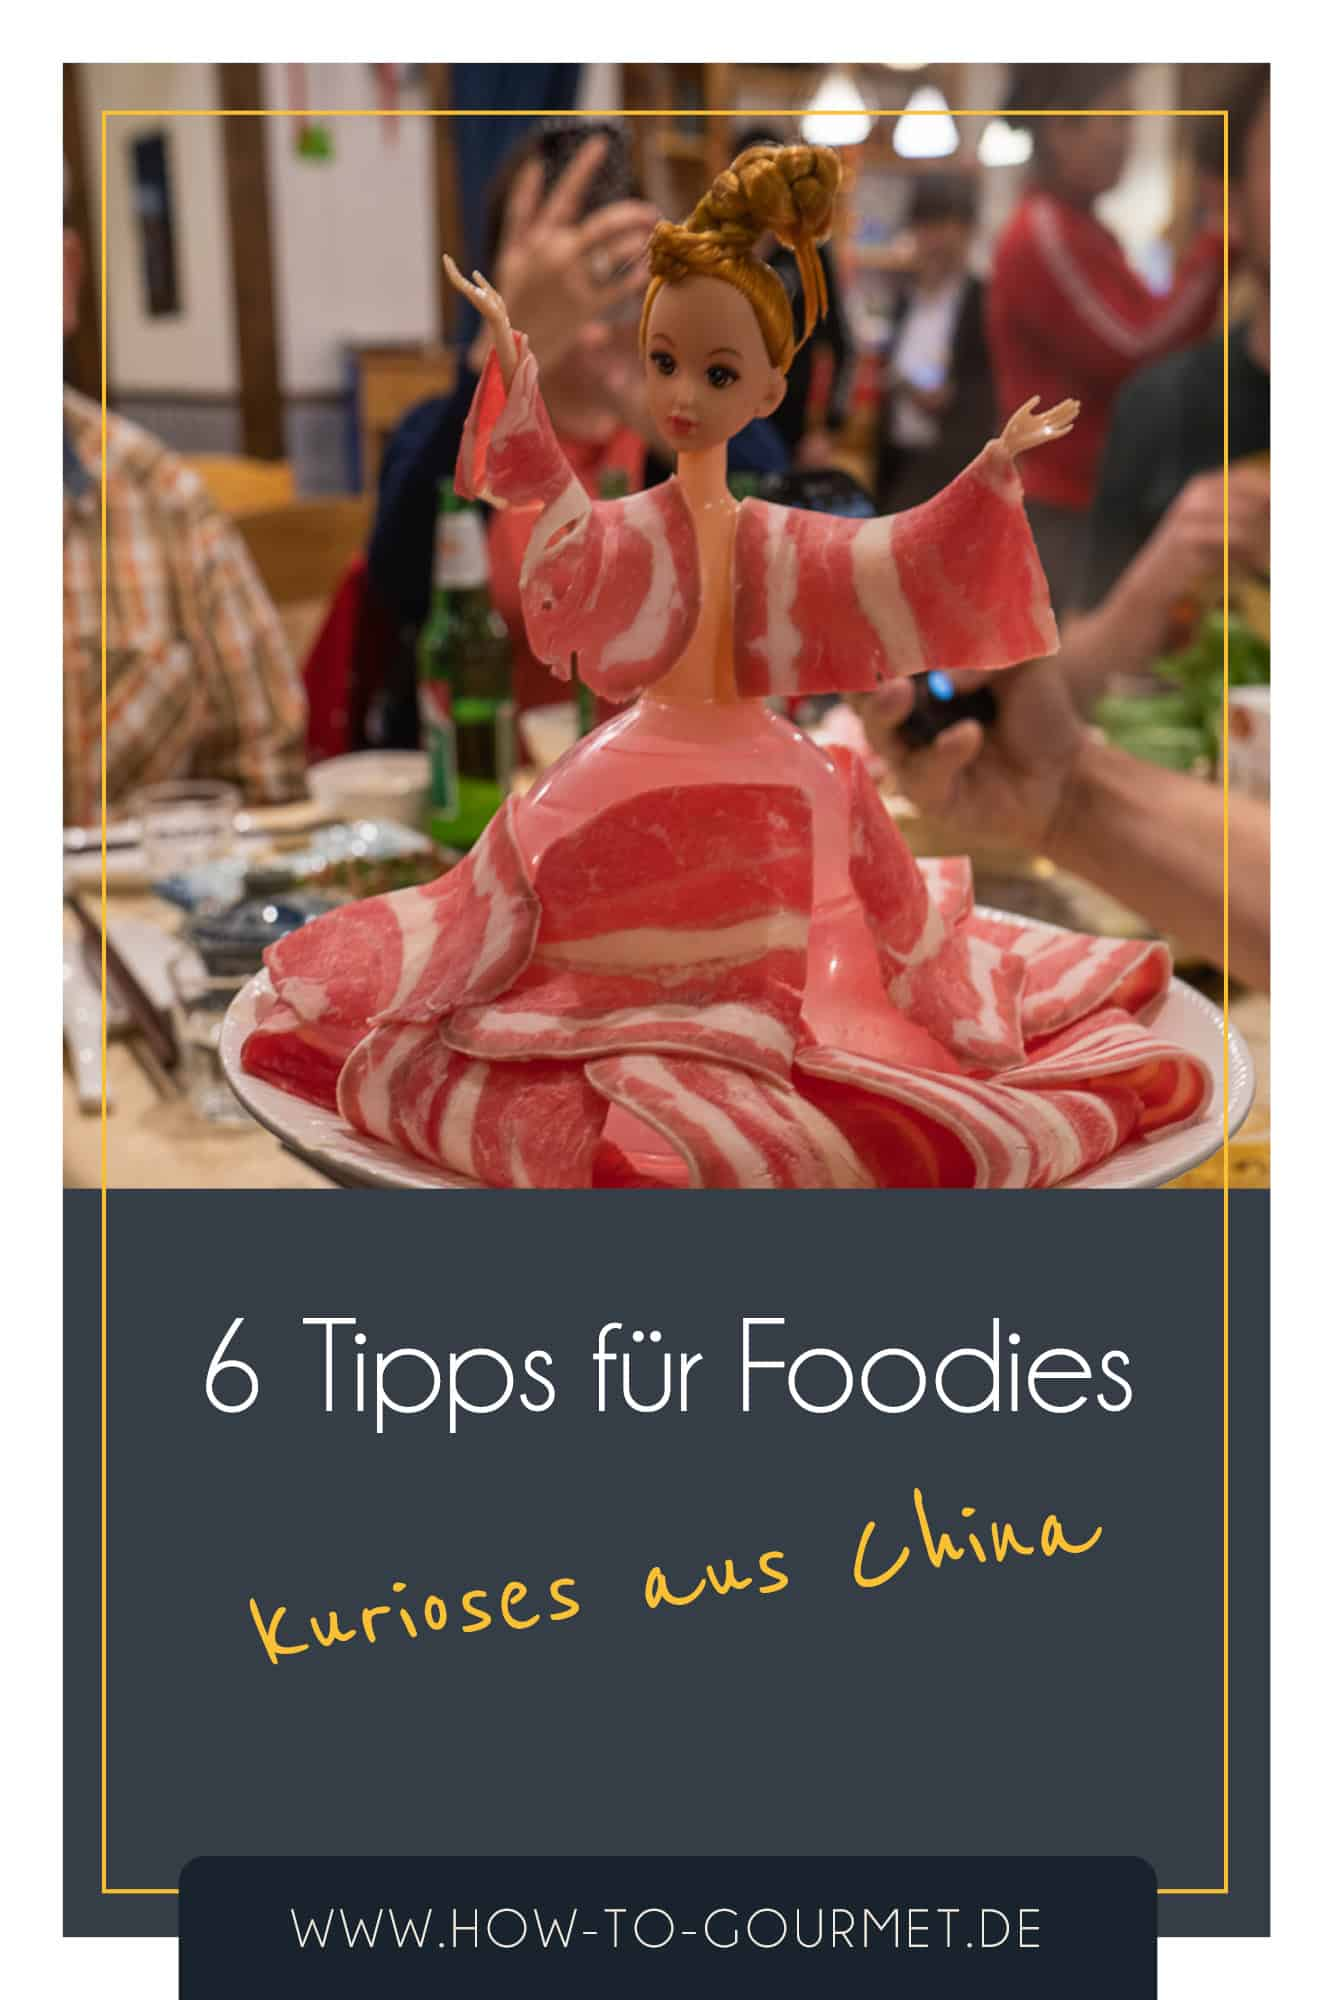 kurioses aus China